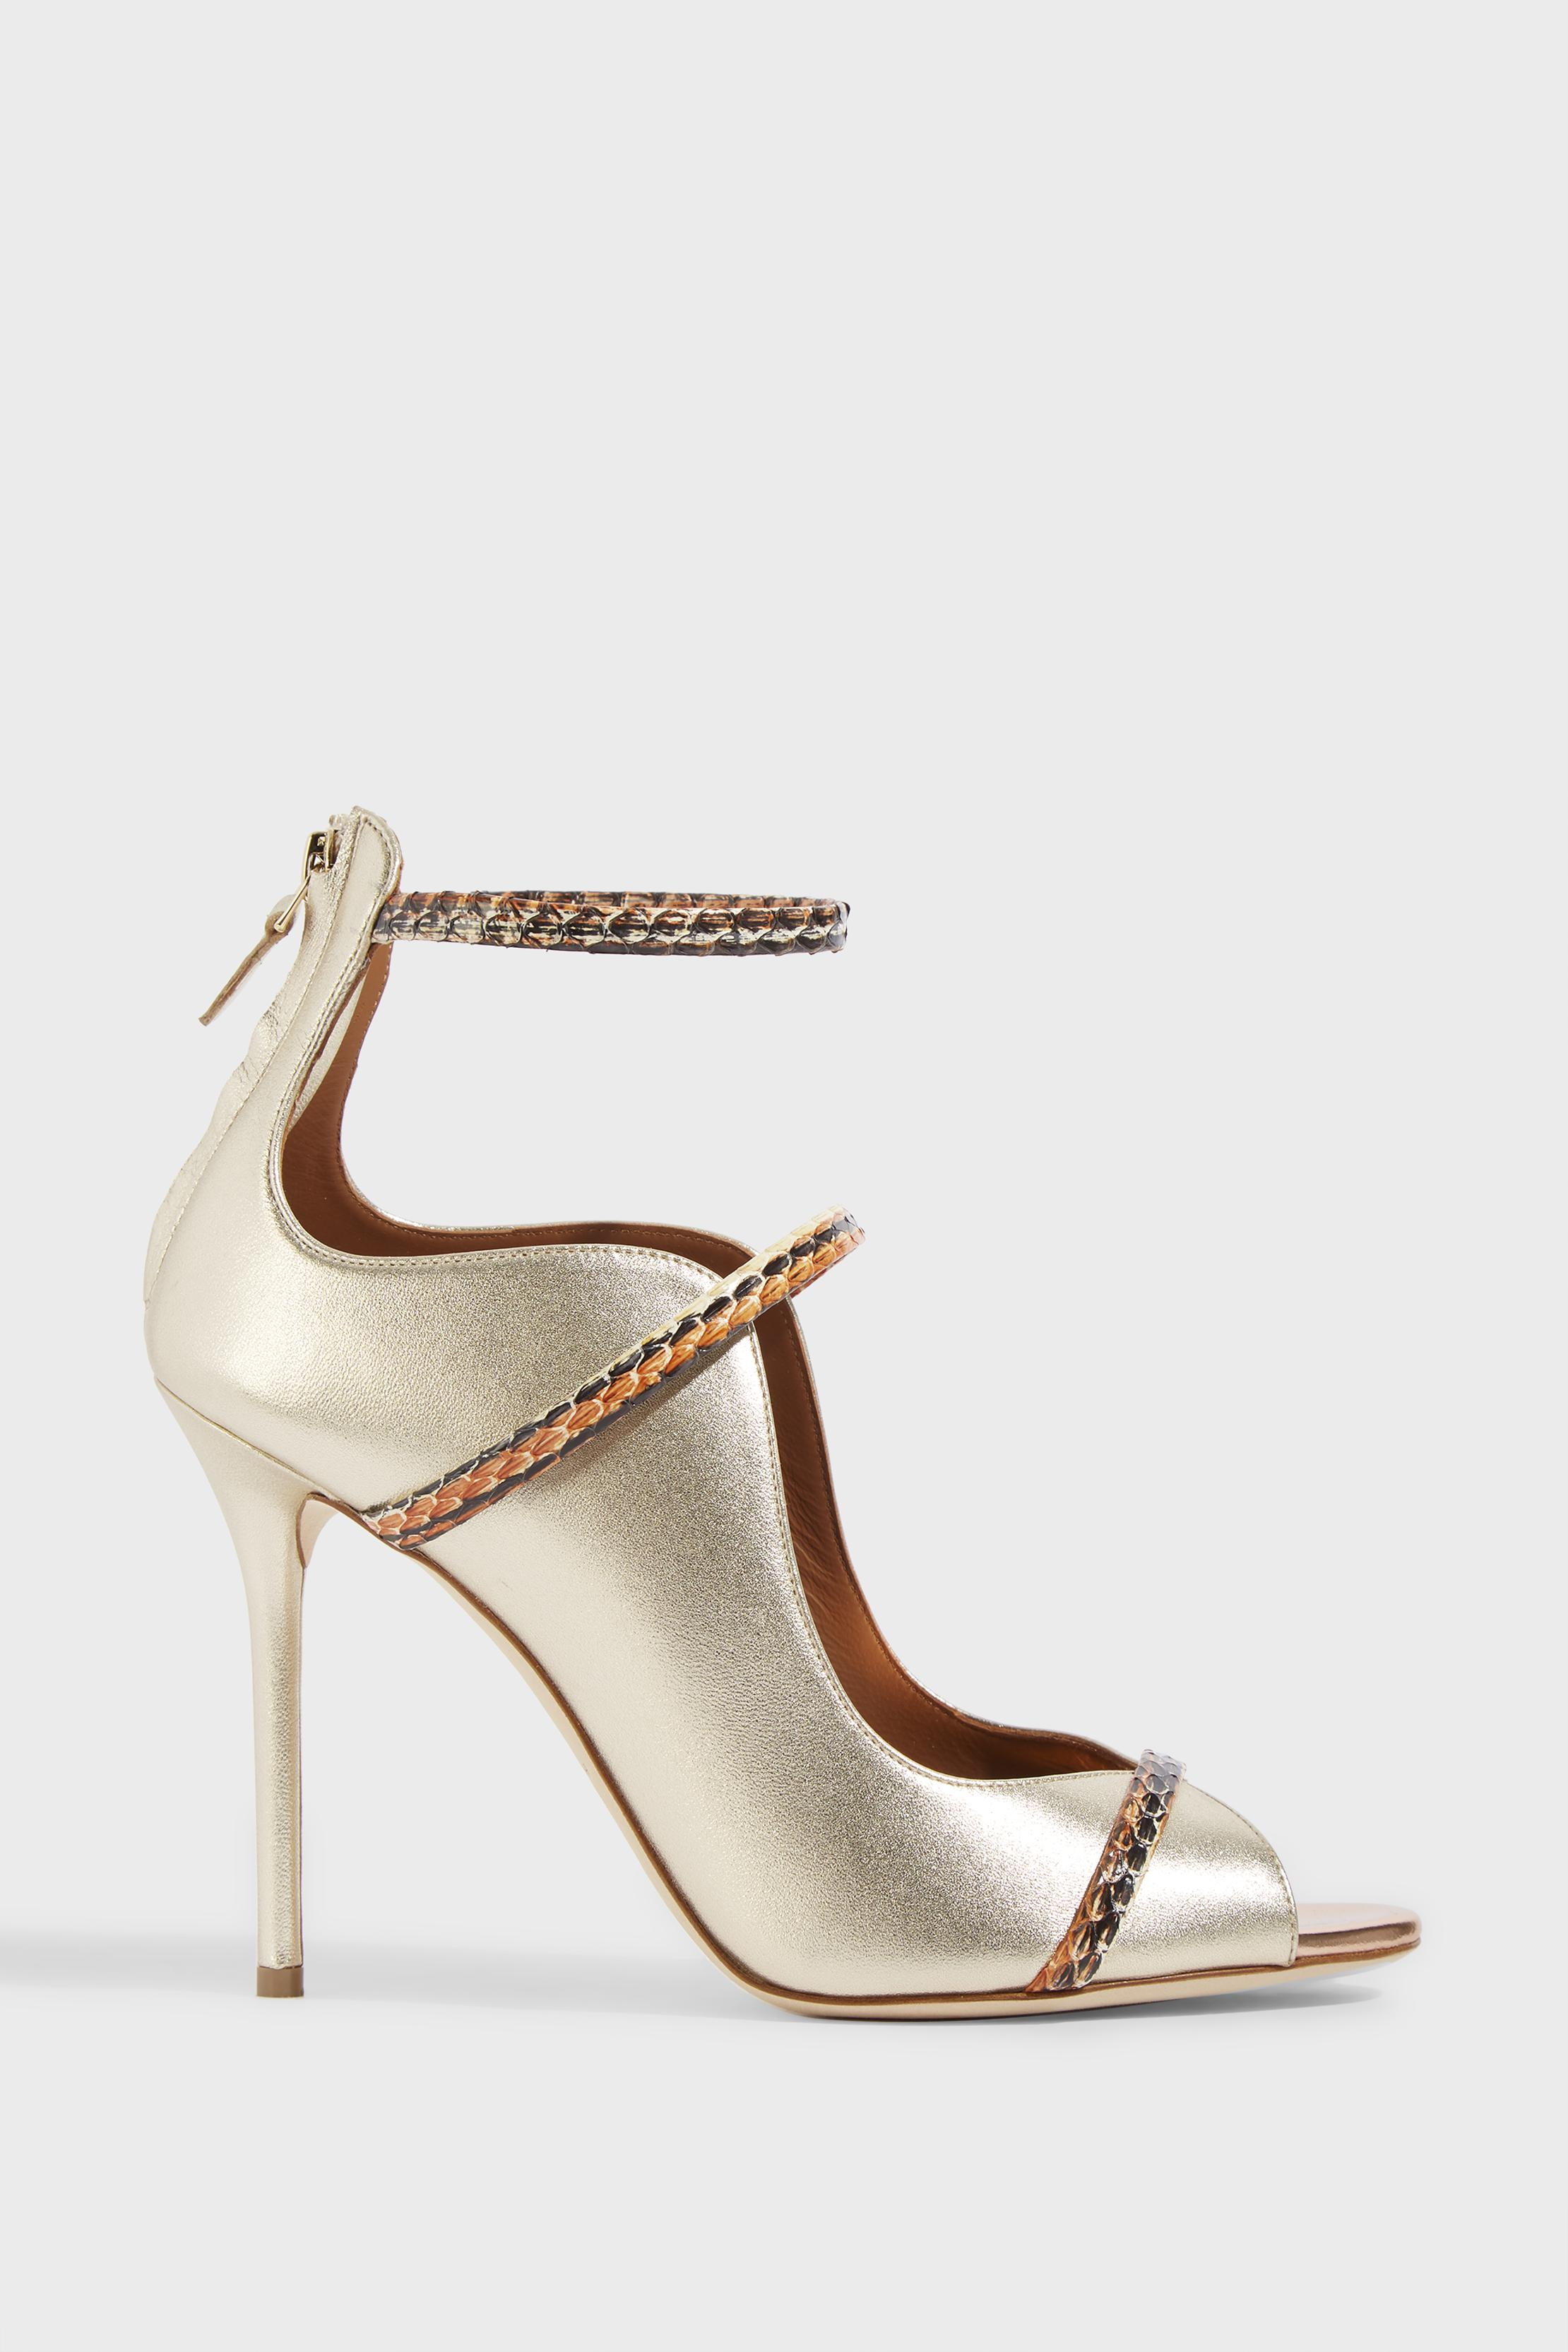 MALONE SOULIERS Mika Metallic Leather Sandals FrapfGbXor